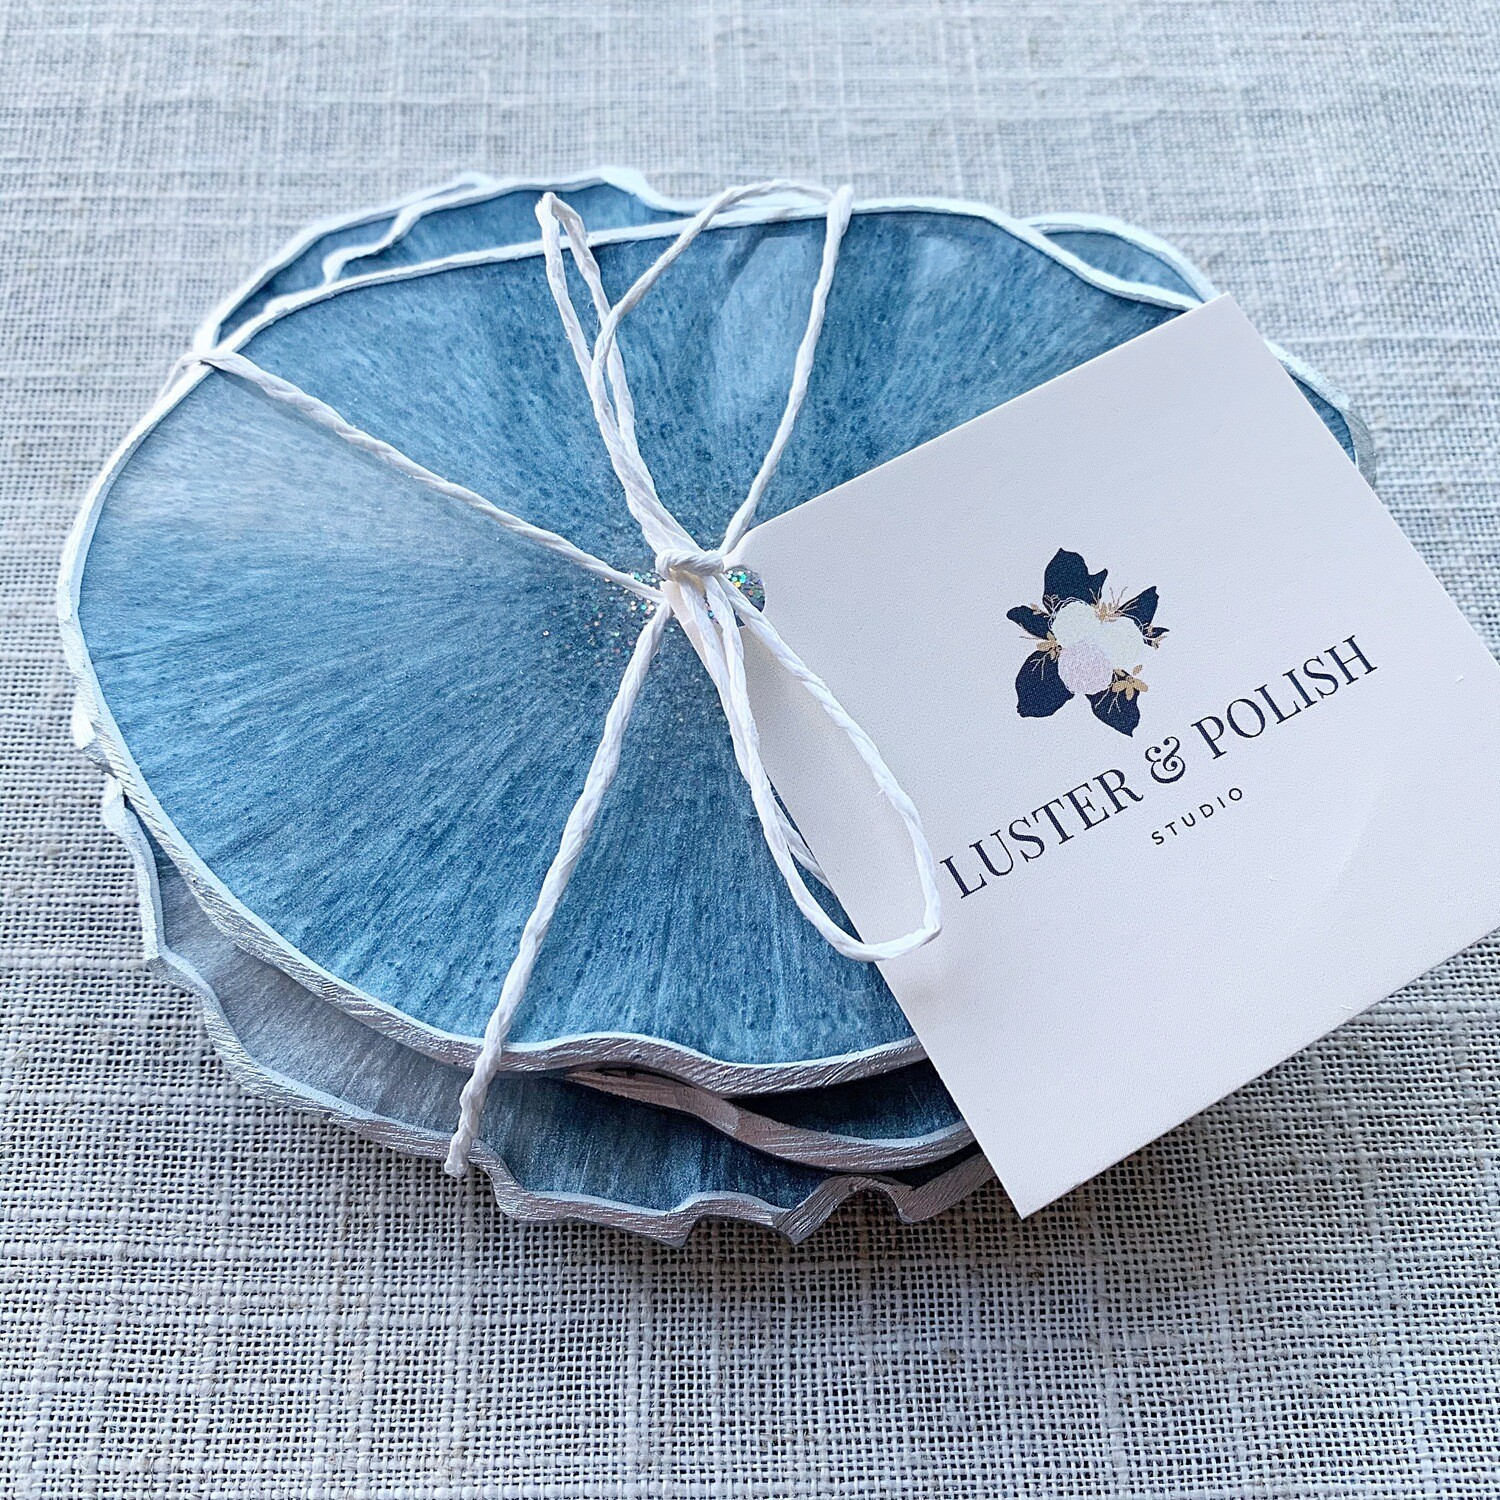 Coasters Blue Luster Resin Set of 4